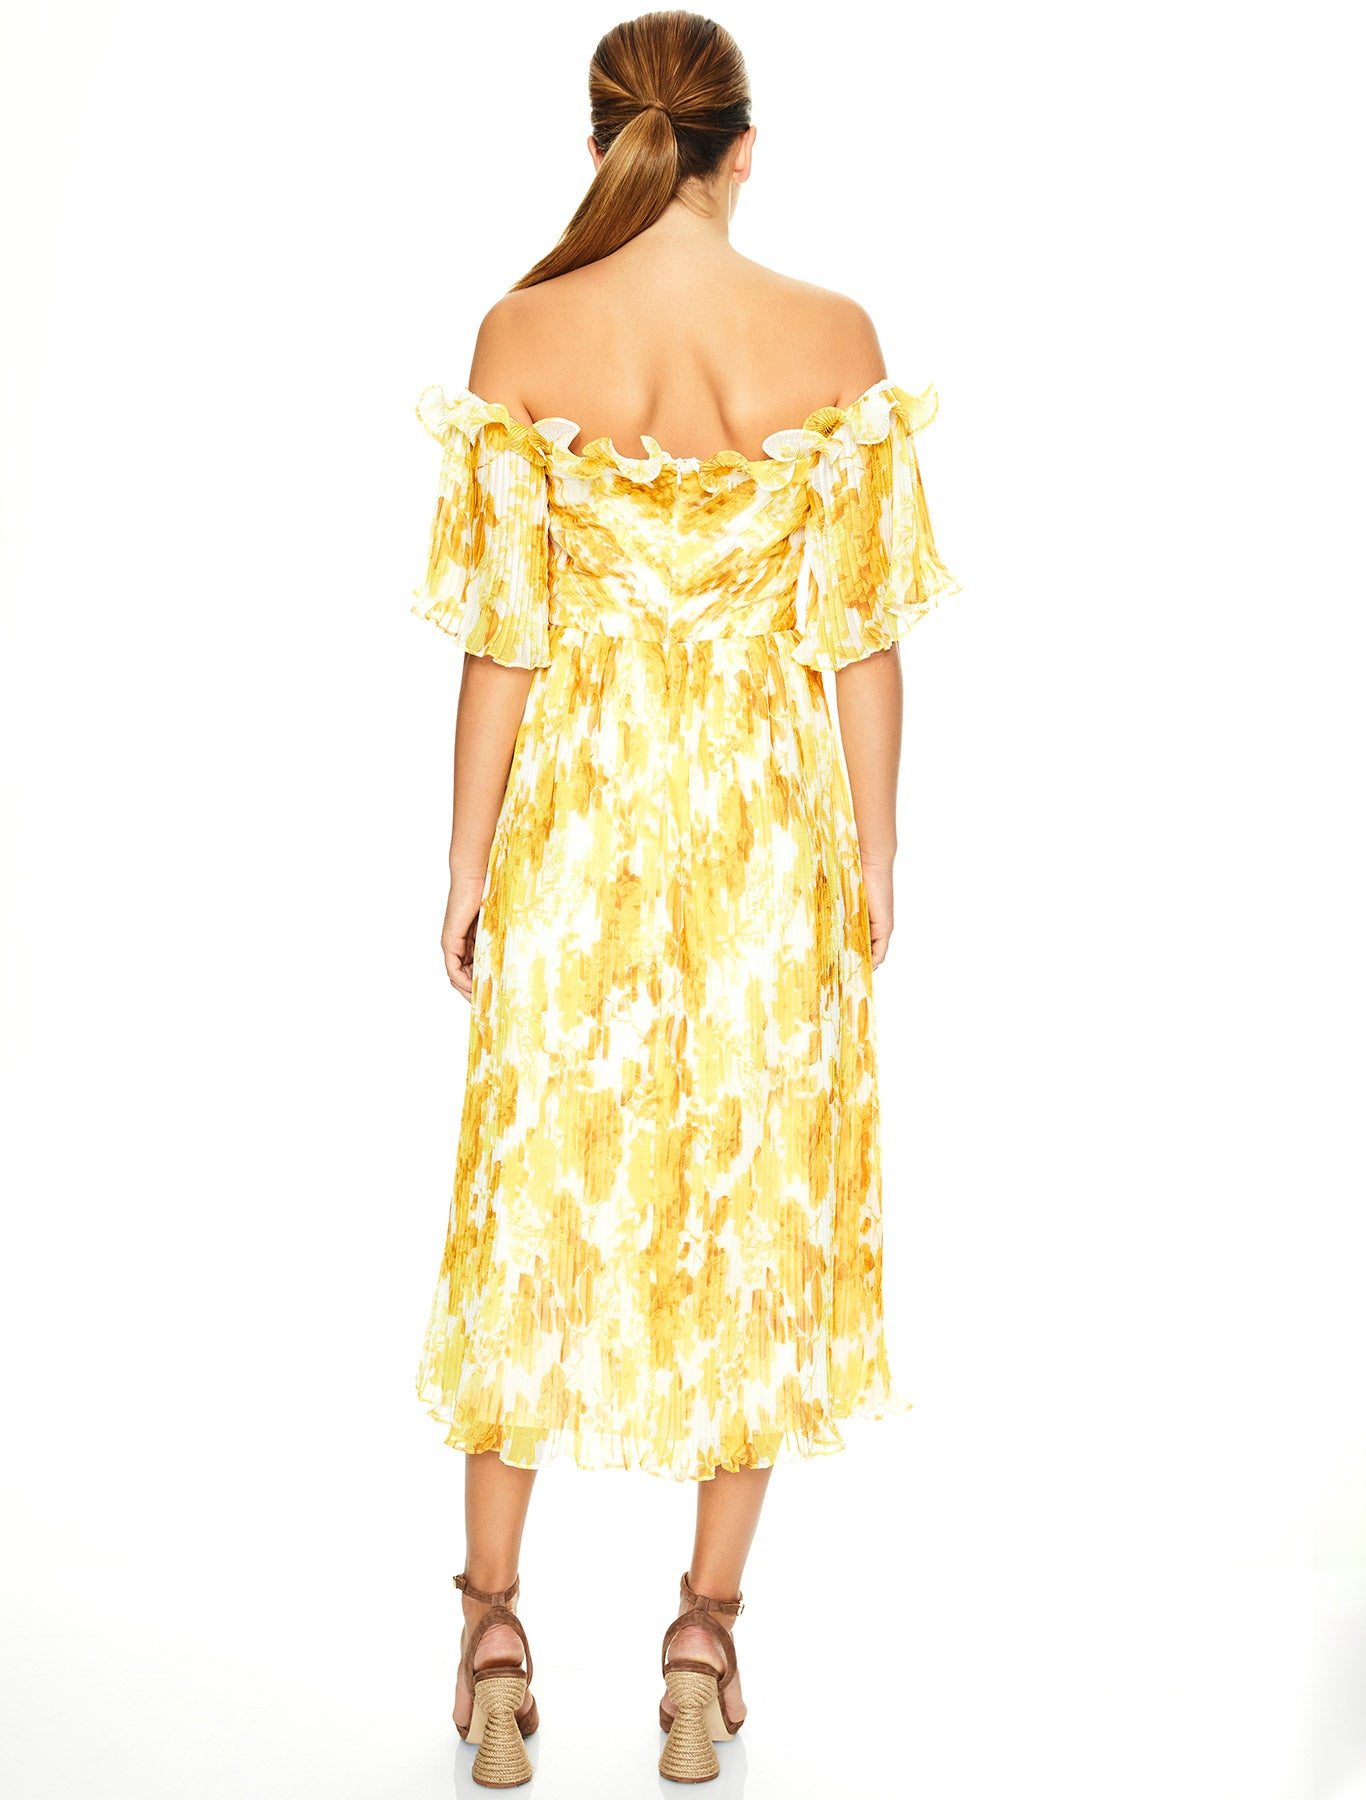 SUNSHINE MIDI DRESS